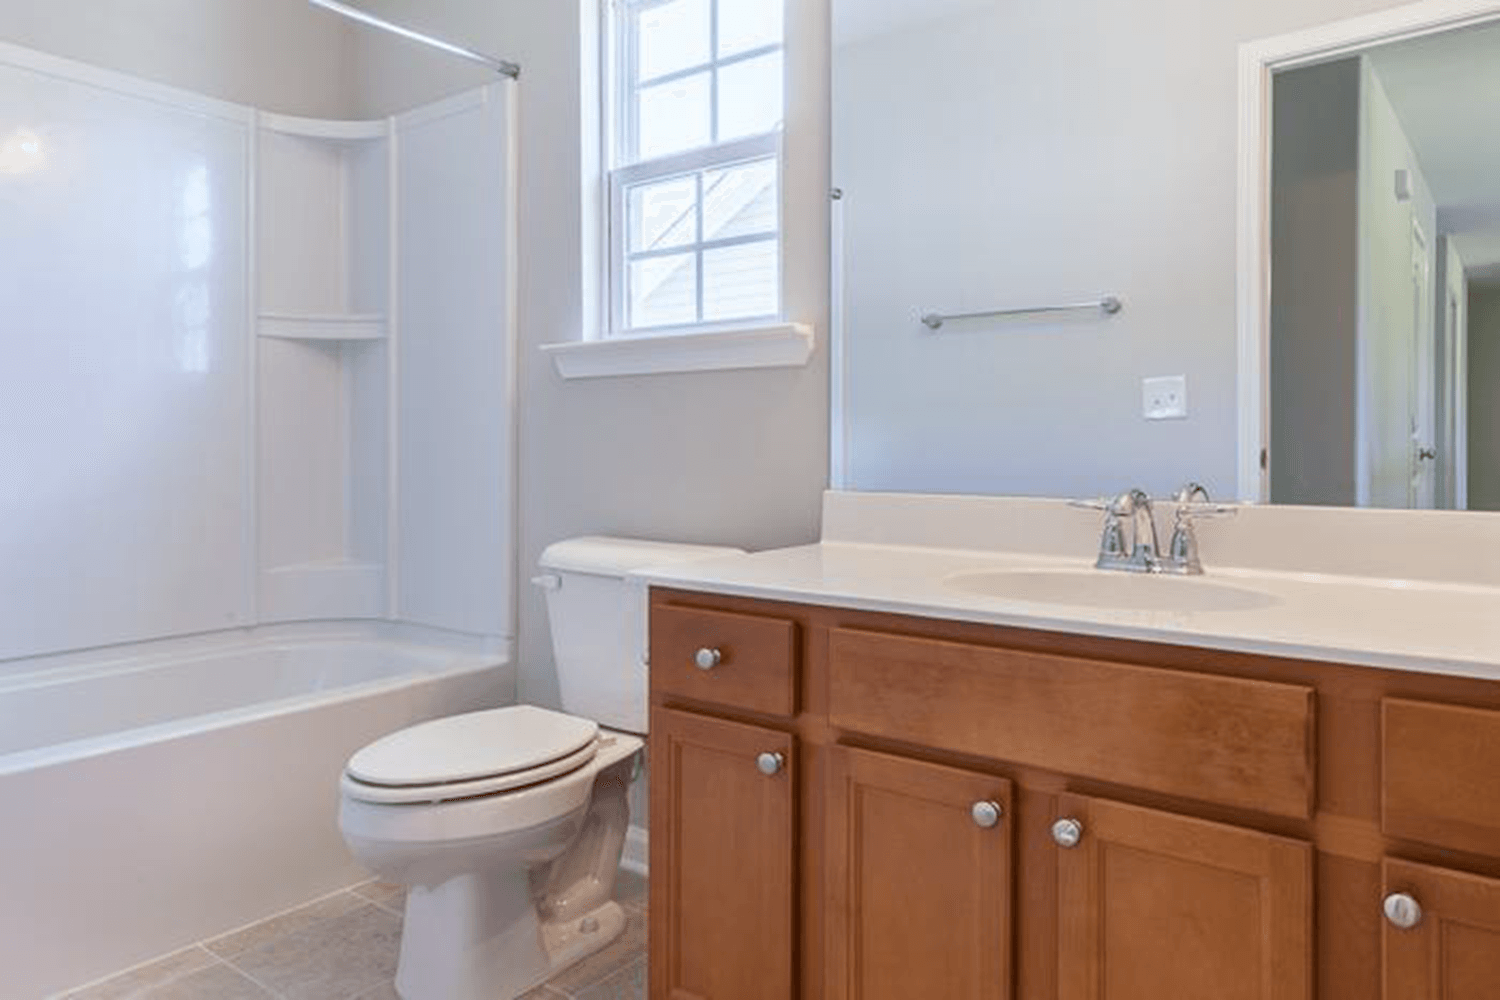 Bathroom featured in The Richmond (Build on your lot) By Lamar Smith Homes in Savannah, GA